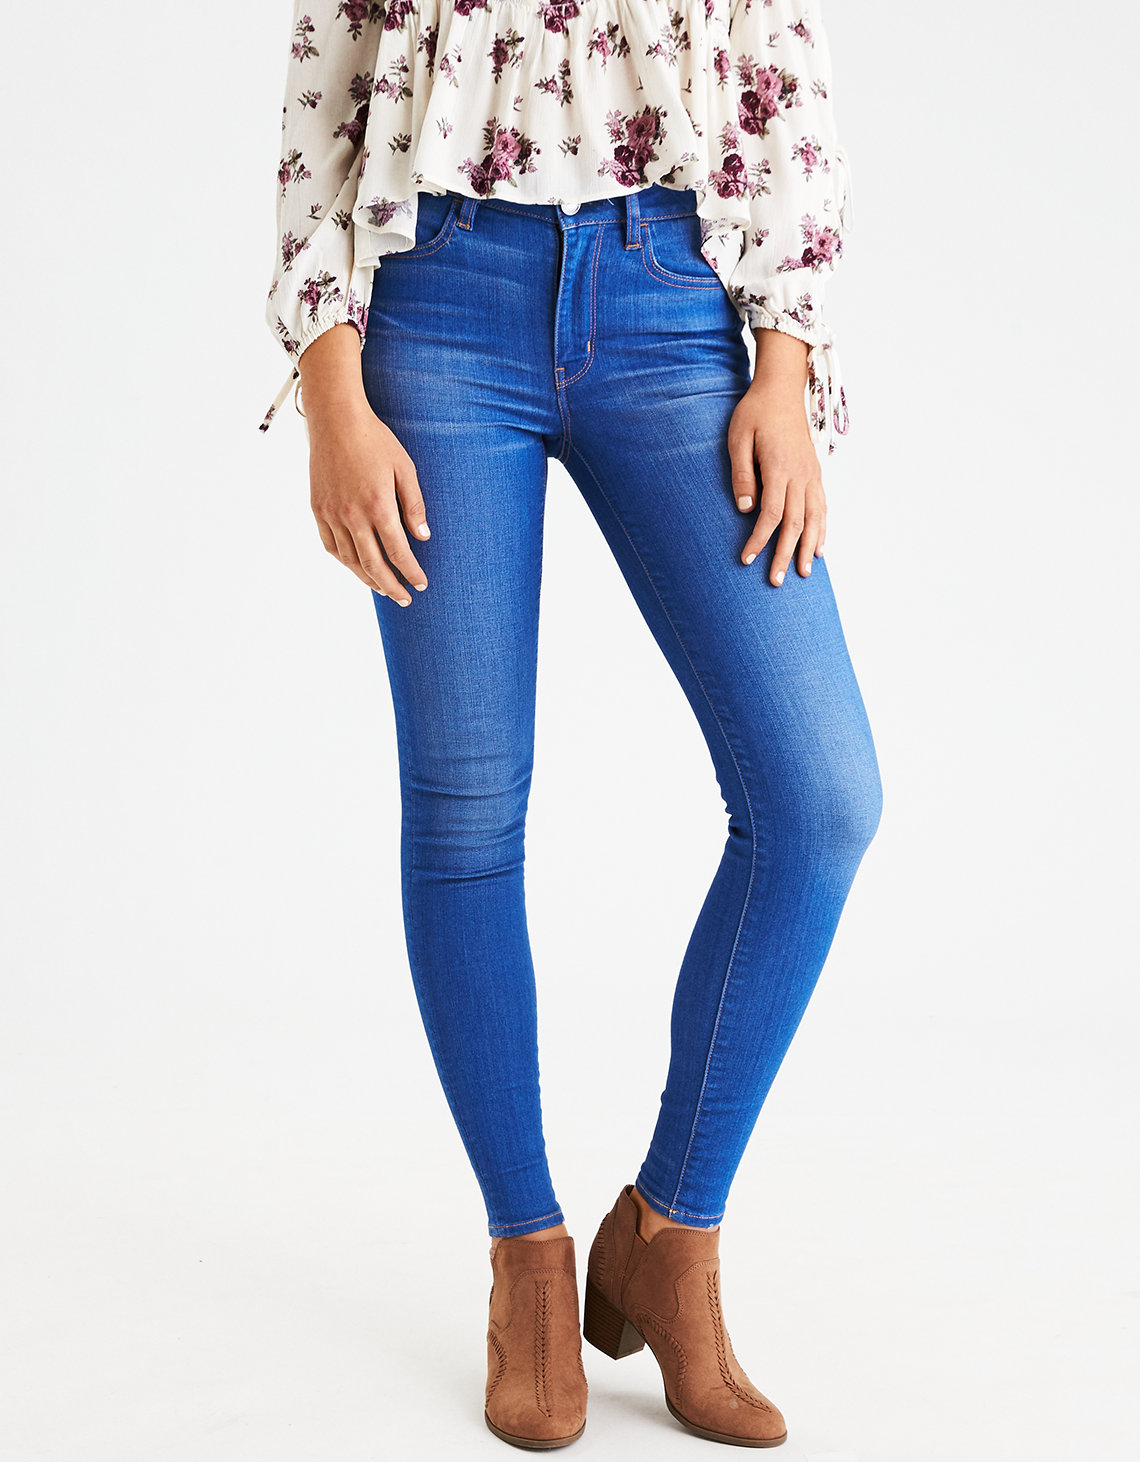 AE Denim X High-Waisted Jegging Sparkling Sapphire | American Eagle Outfitters